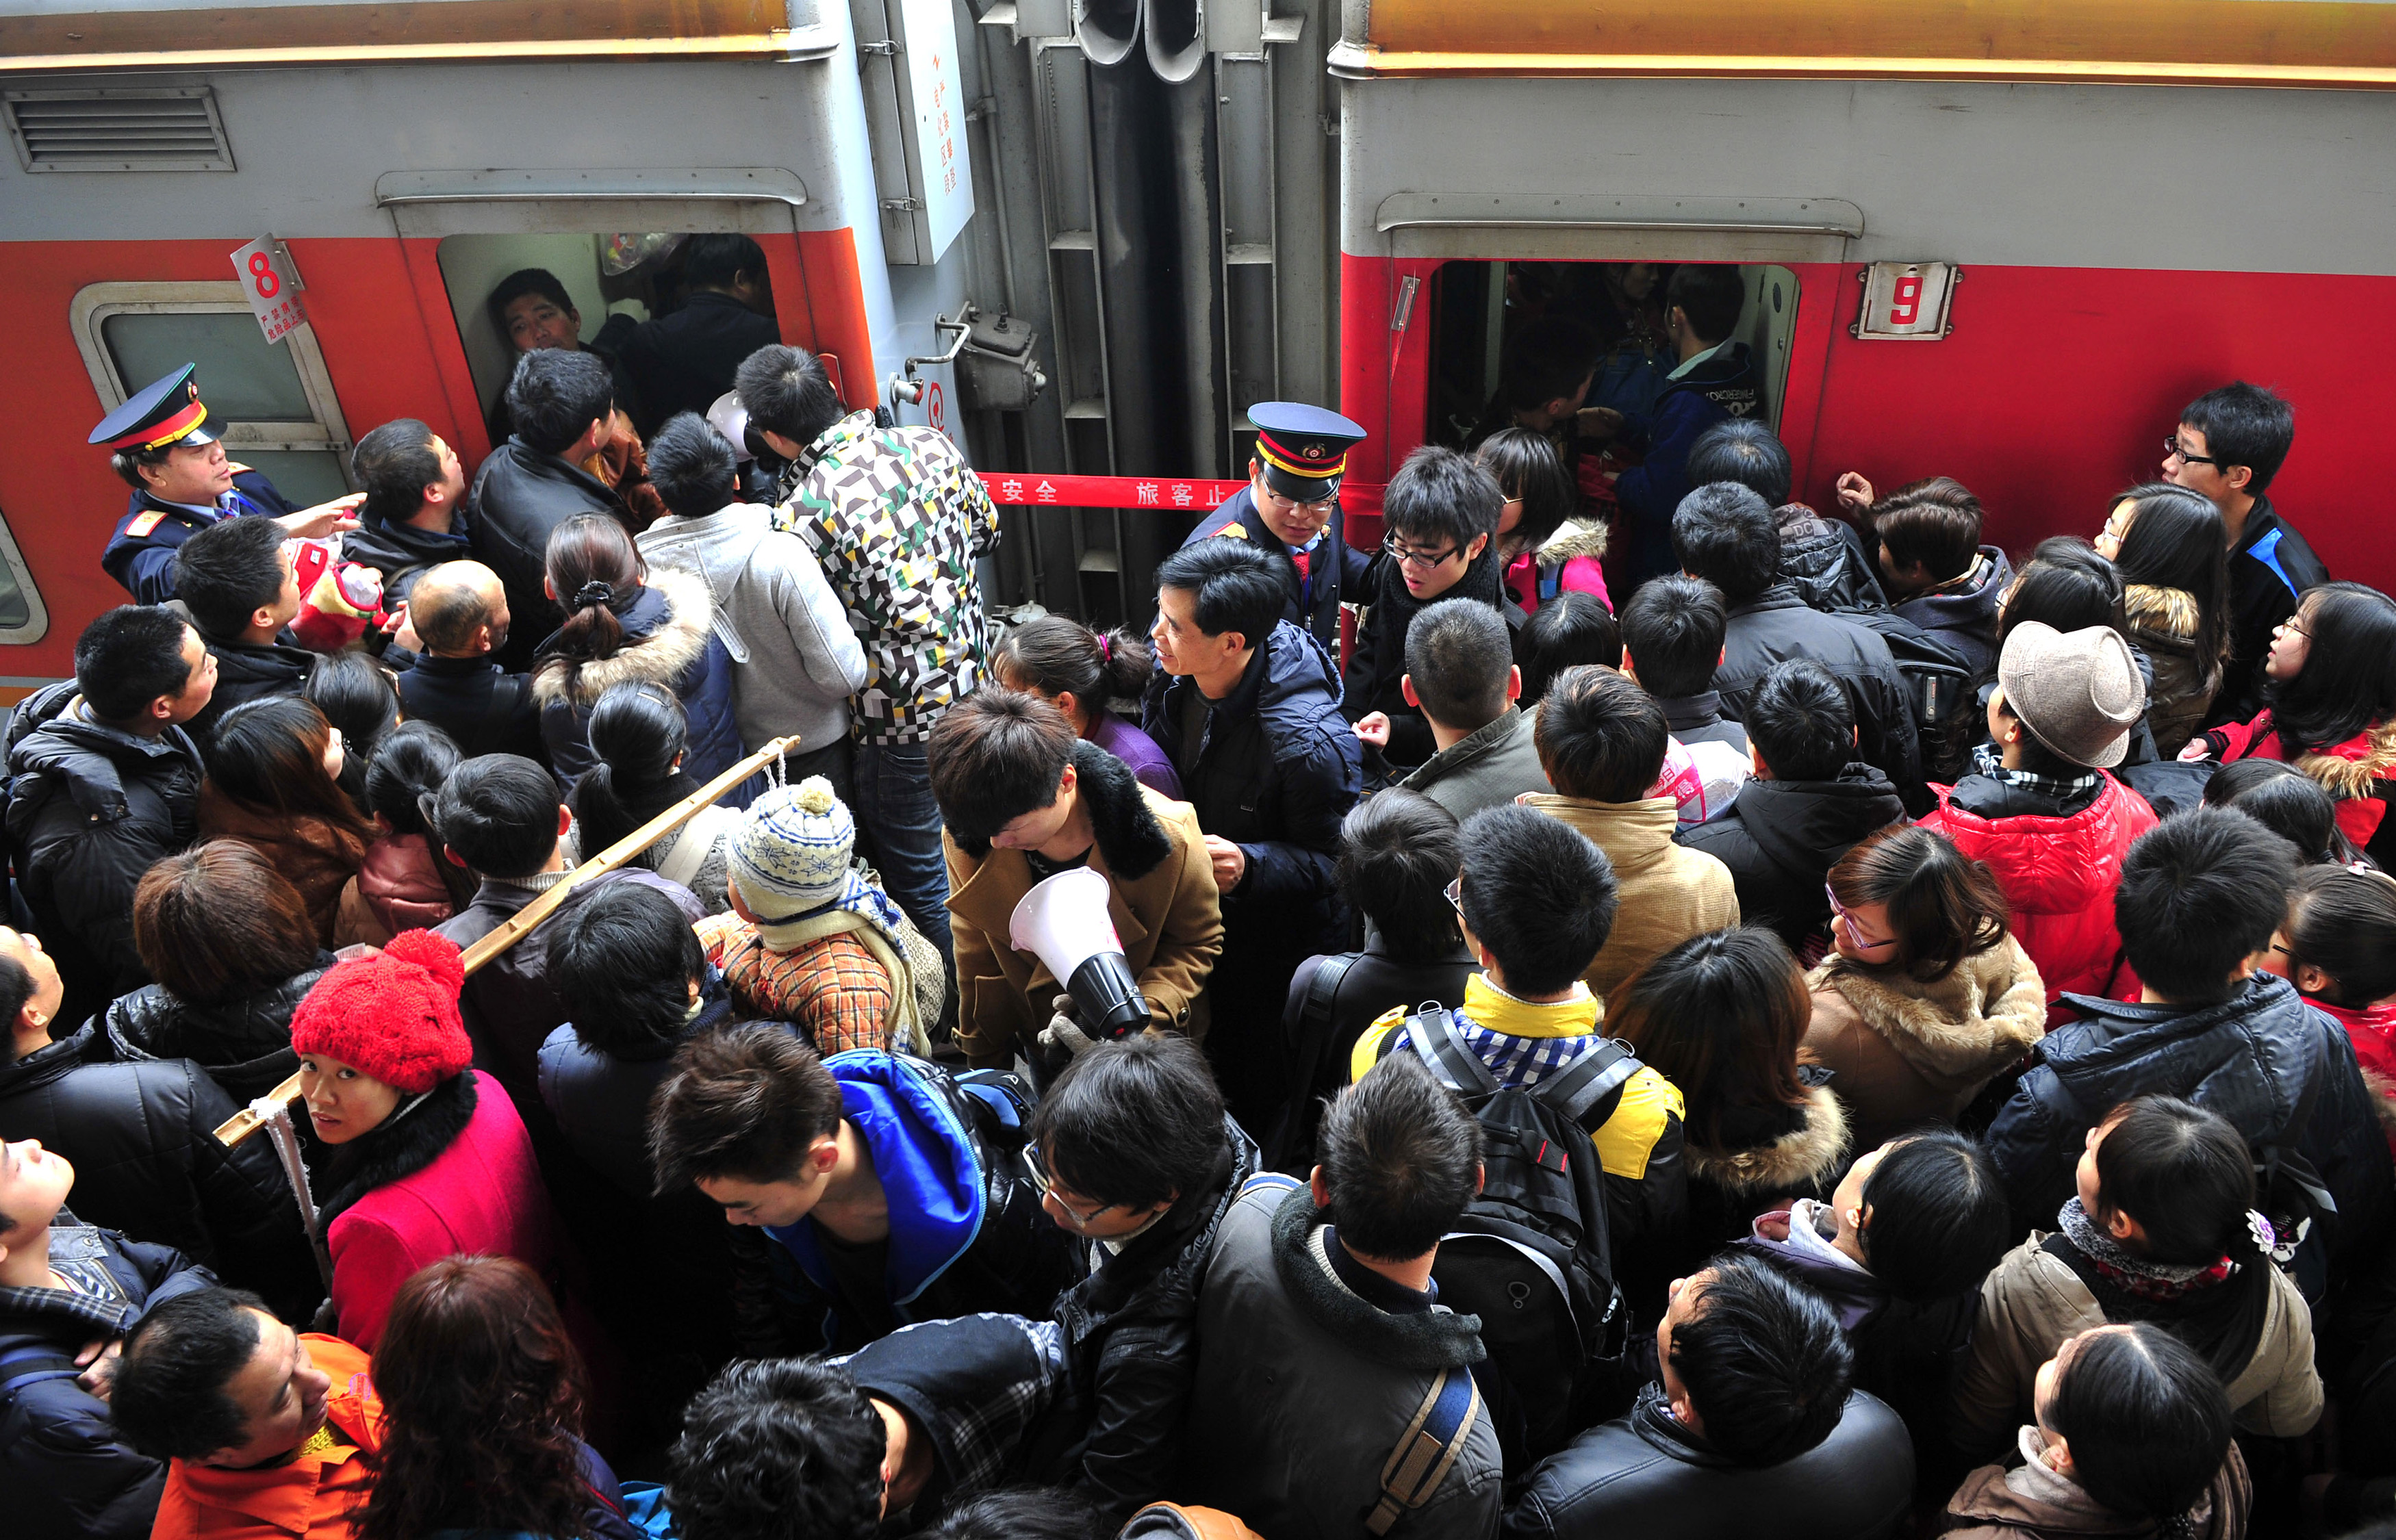 "Passengers rush to board trains at Changsha Railway Station, Hunan province January 8, 2012. Chinese New Year, or Spring Festival, is the bigger of two ""Golden Week"" holidays, giving migrant workers their only chance of the year to return to their home provinces with gifts for their families. More than 200 million people are expected to take to the railways over this year's holiday, the biggest movement of humanity in the world. Picture taken January 8, 2012. REUTERS/China Daily (CHINA - Tags: SOCIETY TRANSPORT) CHINA OUT. NO COMMERCIAL OR EDITORIAL SALES IN CHINA - GM1E8190Y3C01"